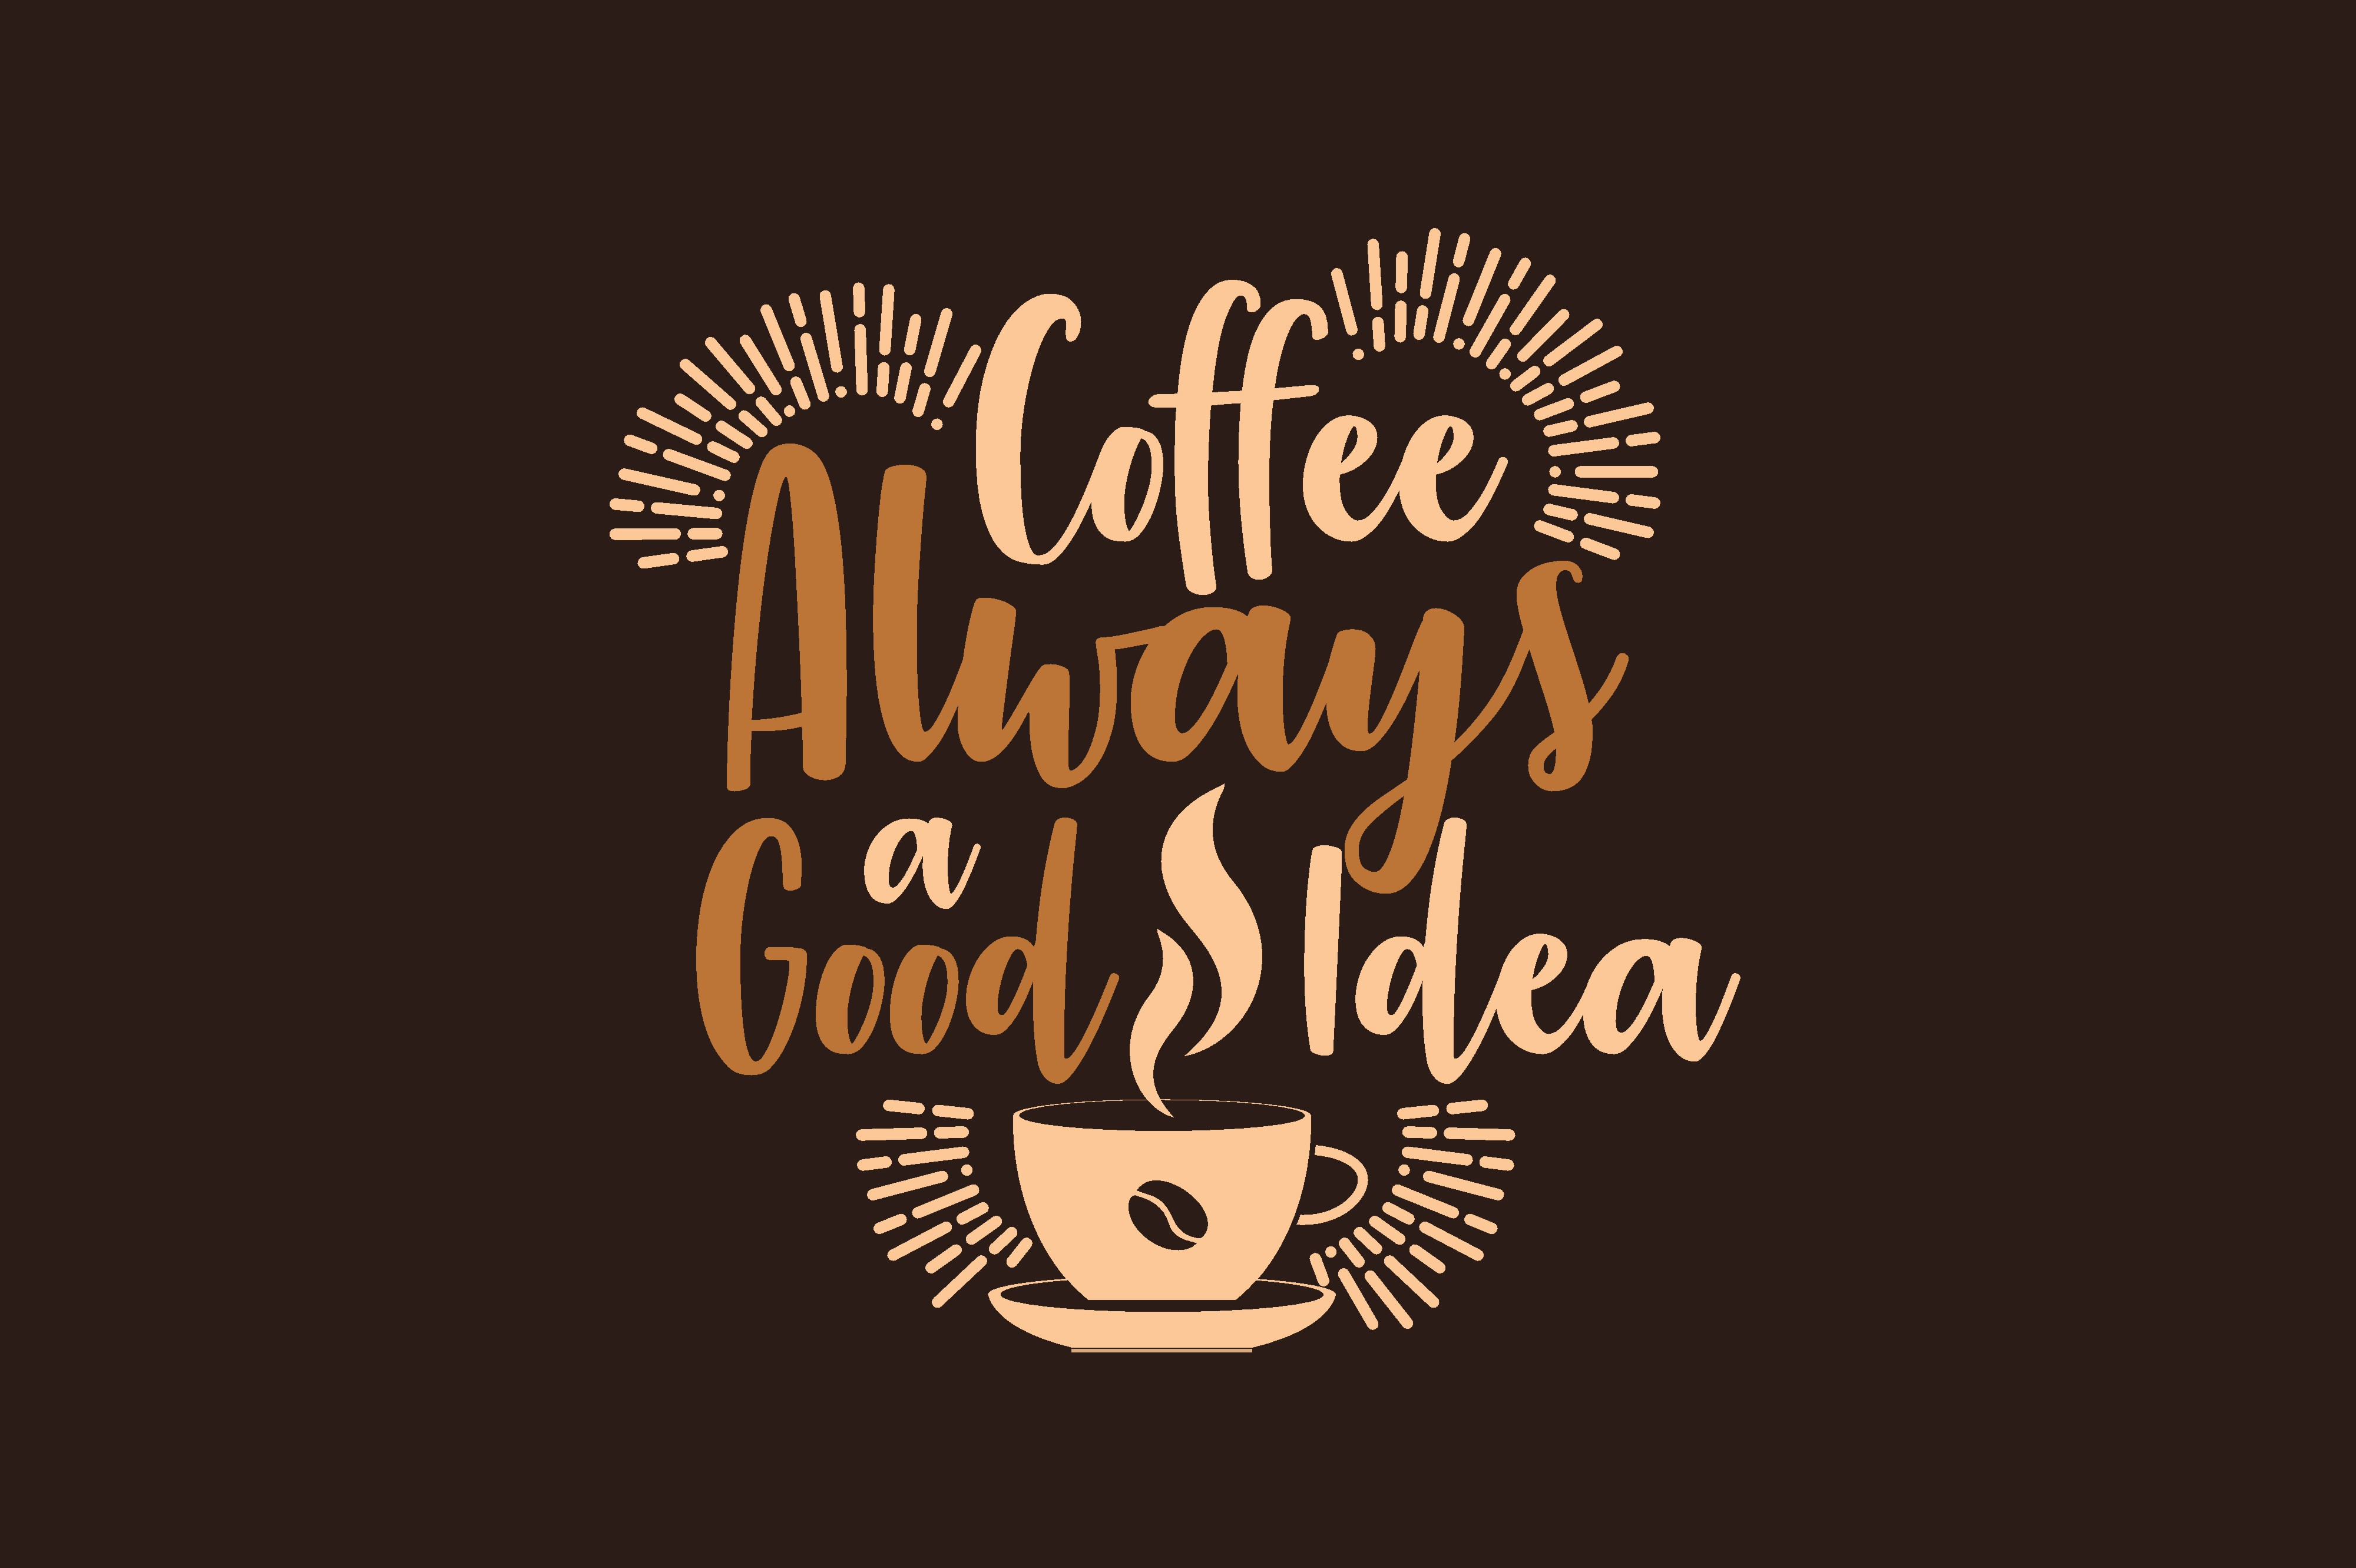 Download Free Coffee Always A Good Idea Graphic By Chairul Ma Arif Creative for Cricut Explore, Silhouette and other cutting machines.